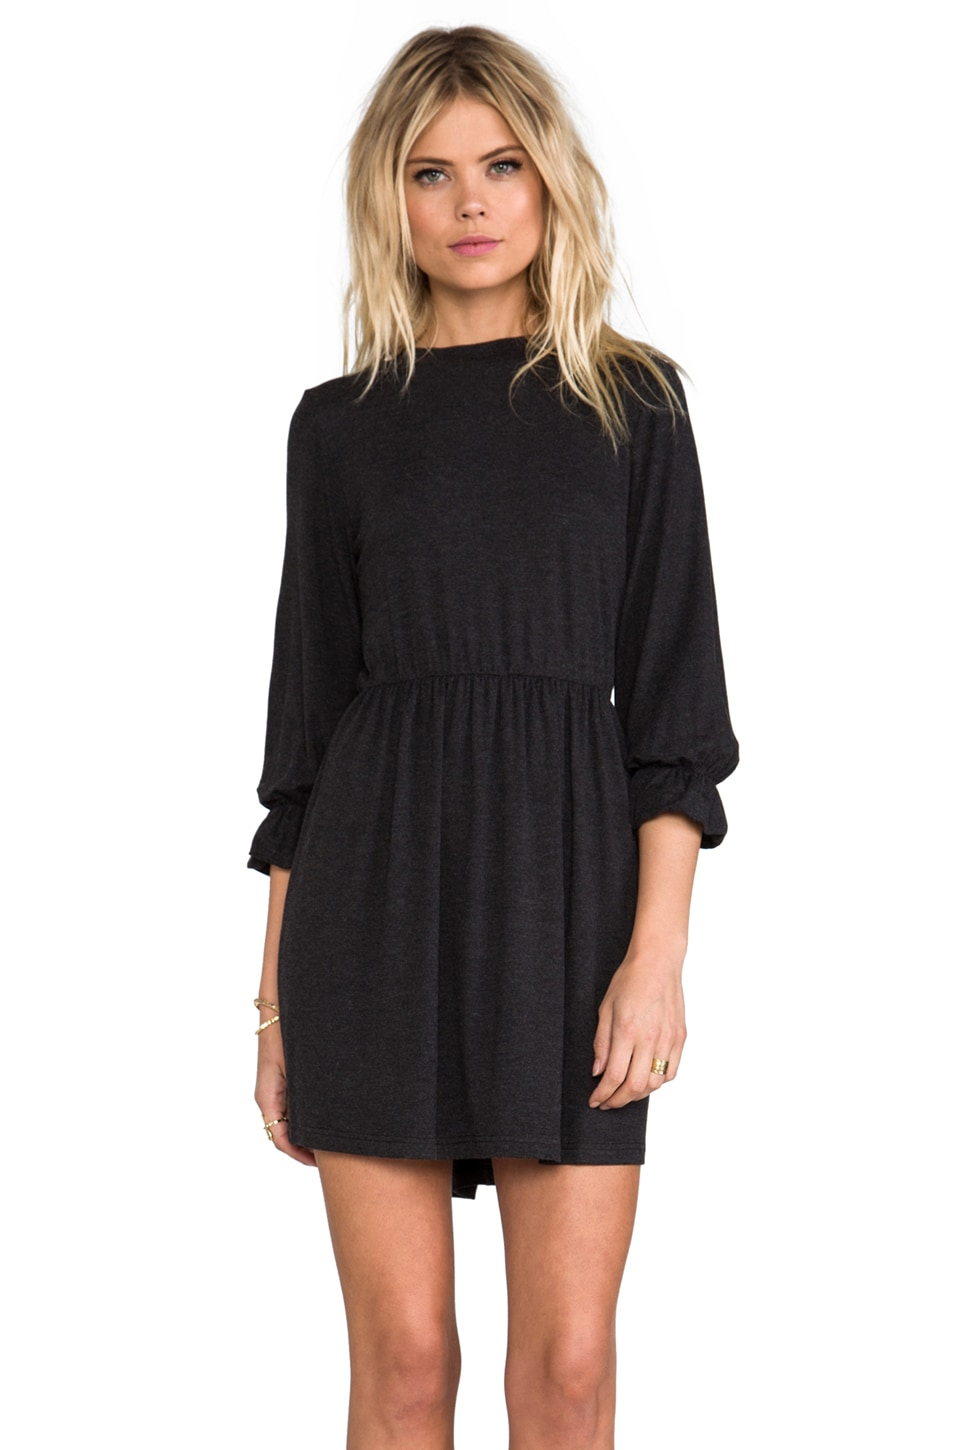 ANINE BING High Collar Dress in Charcoal